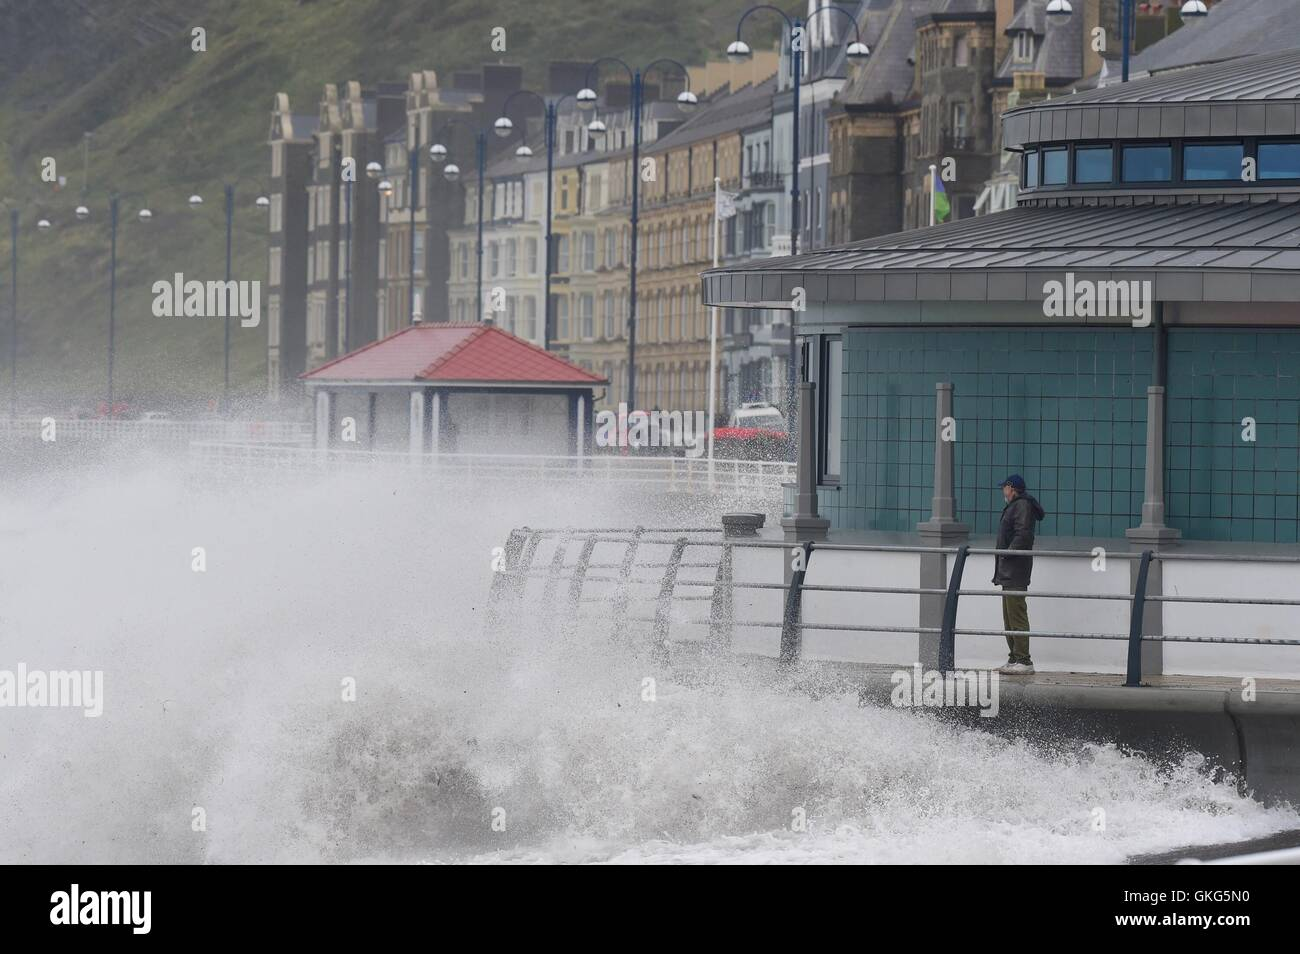 Aberystwyth Wales UK, Saturday 20 August 2016   At gale force winds and high tide bring huge waves crashing against Stock Photo